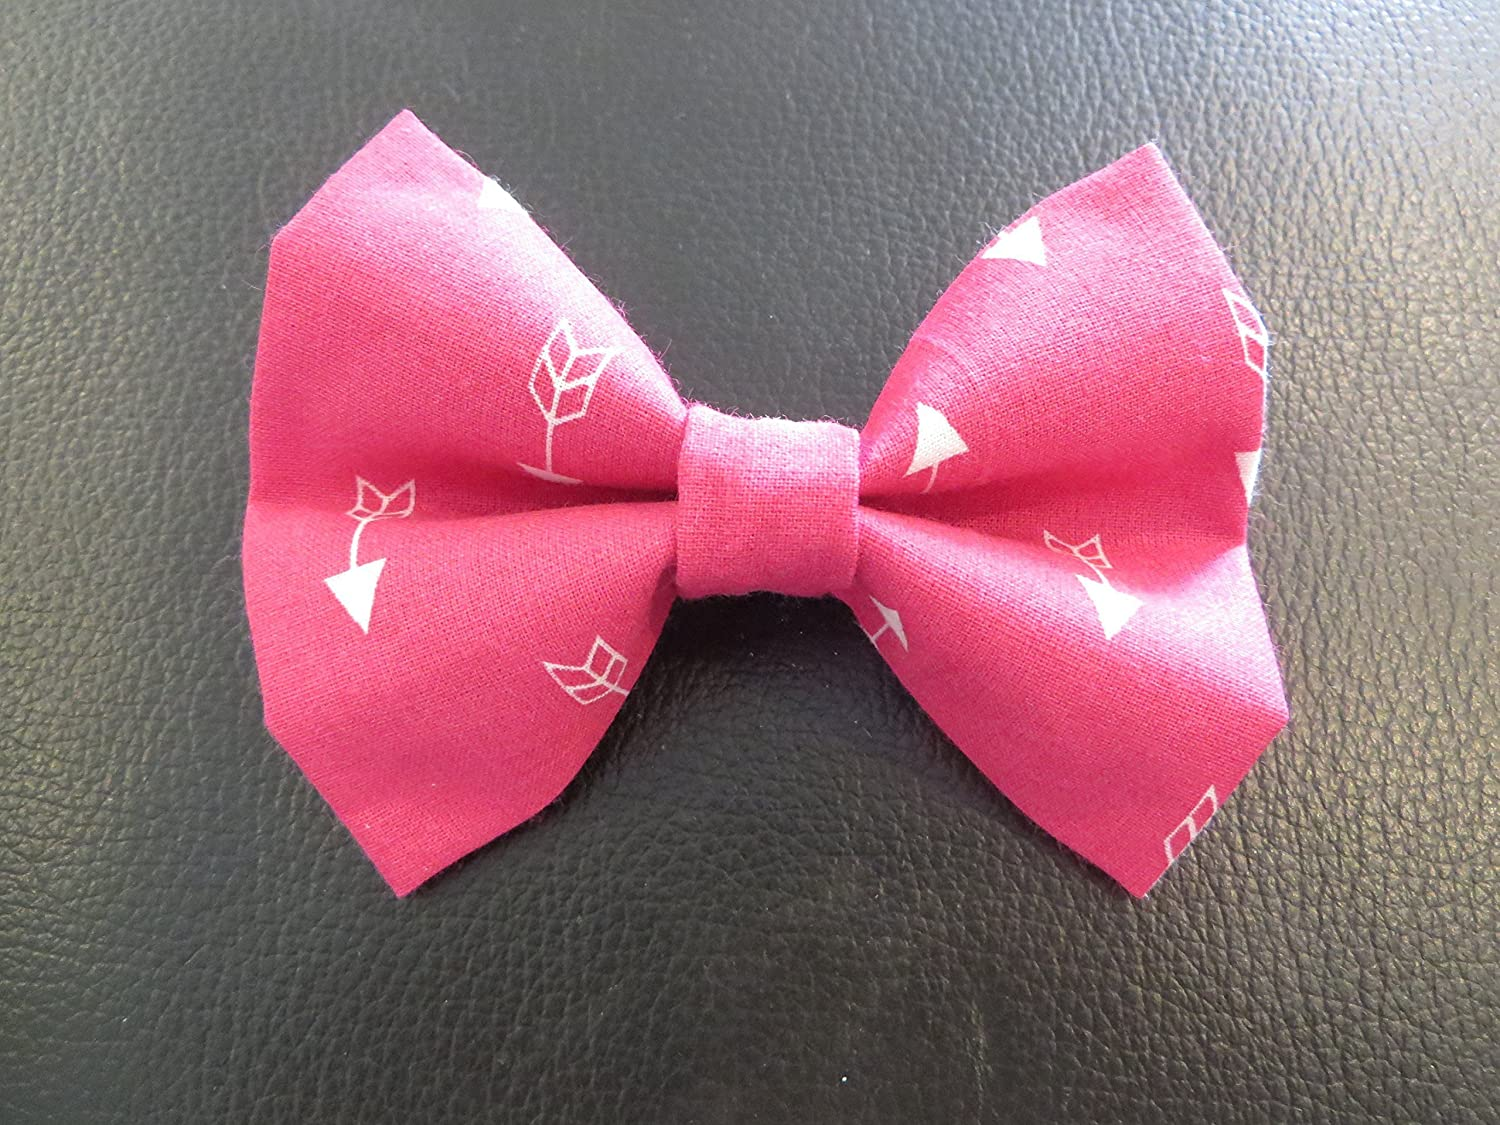 Dog Bow Tie in Pink and White Arrows